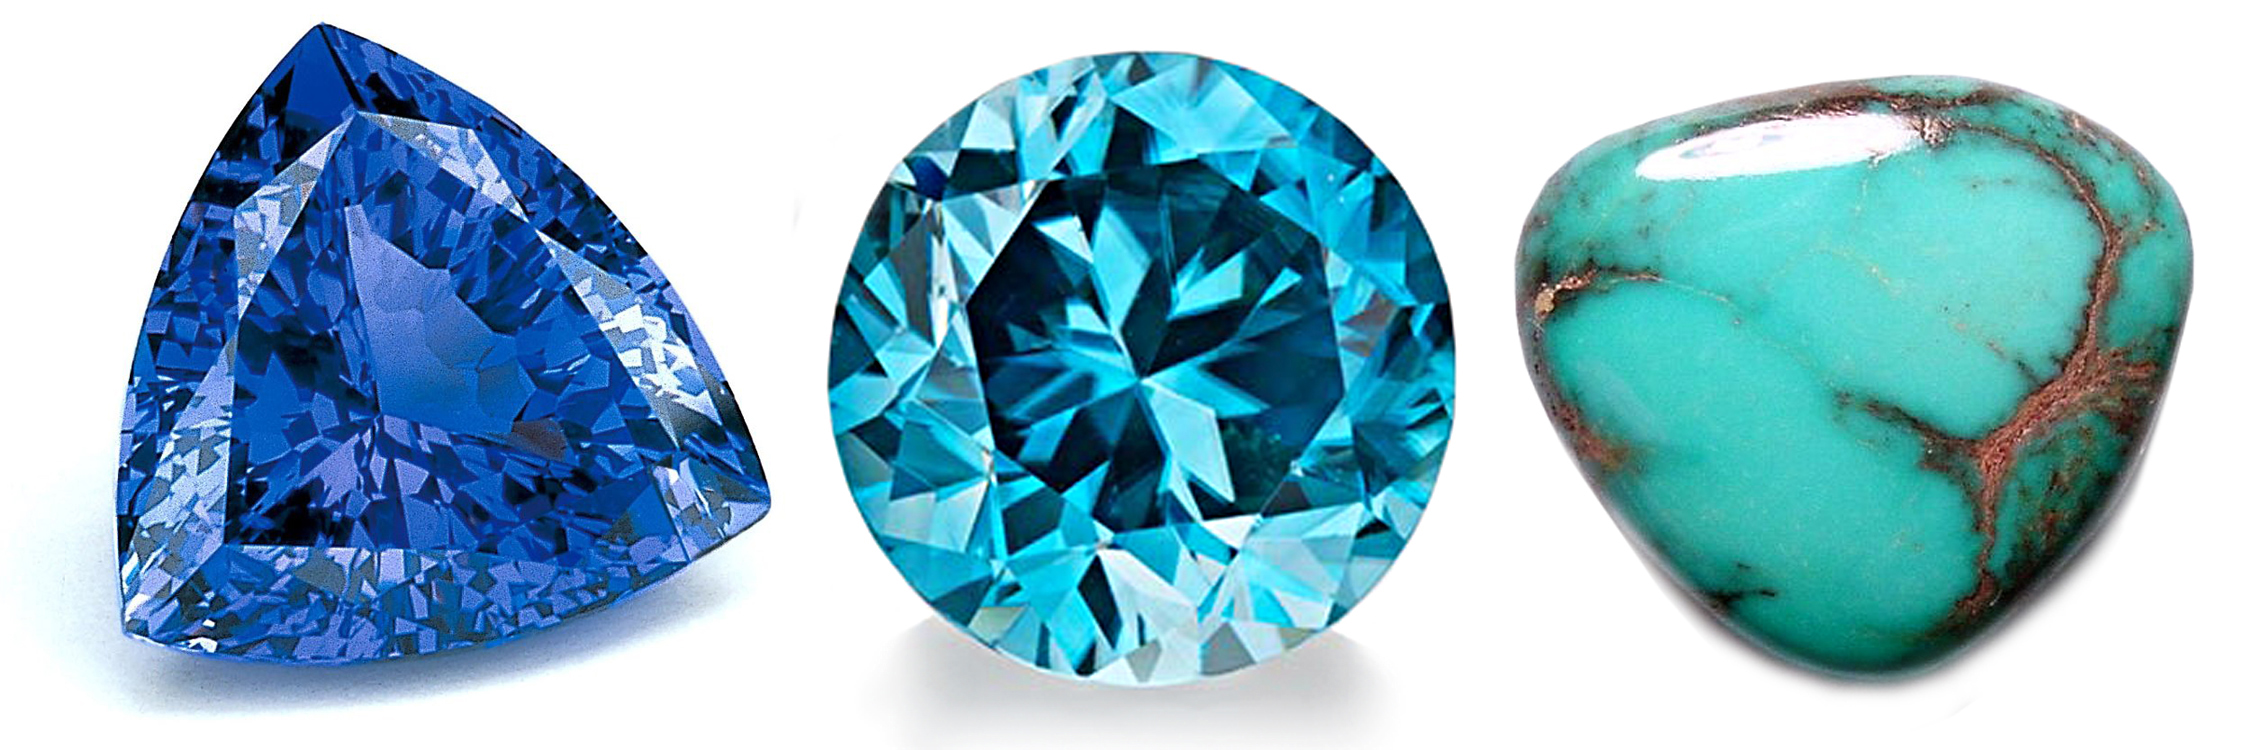 Birthstone Spotlight: December Tanzanite, Zircon, or ...